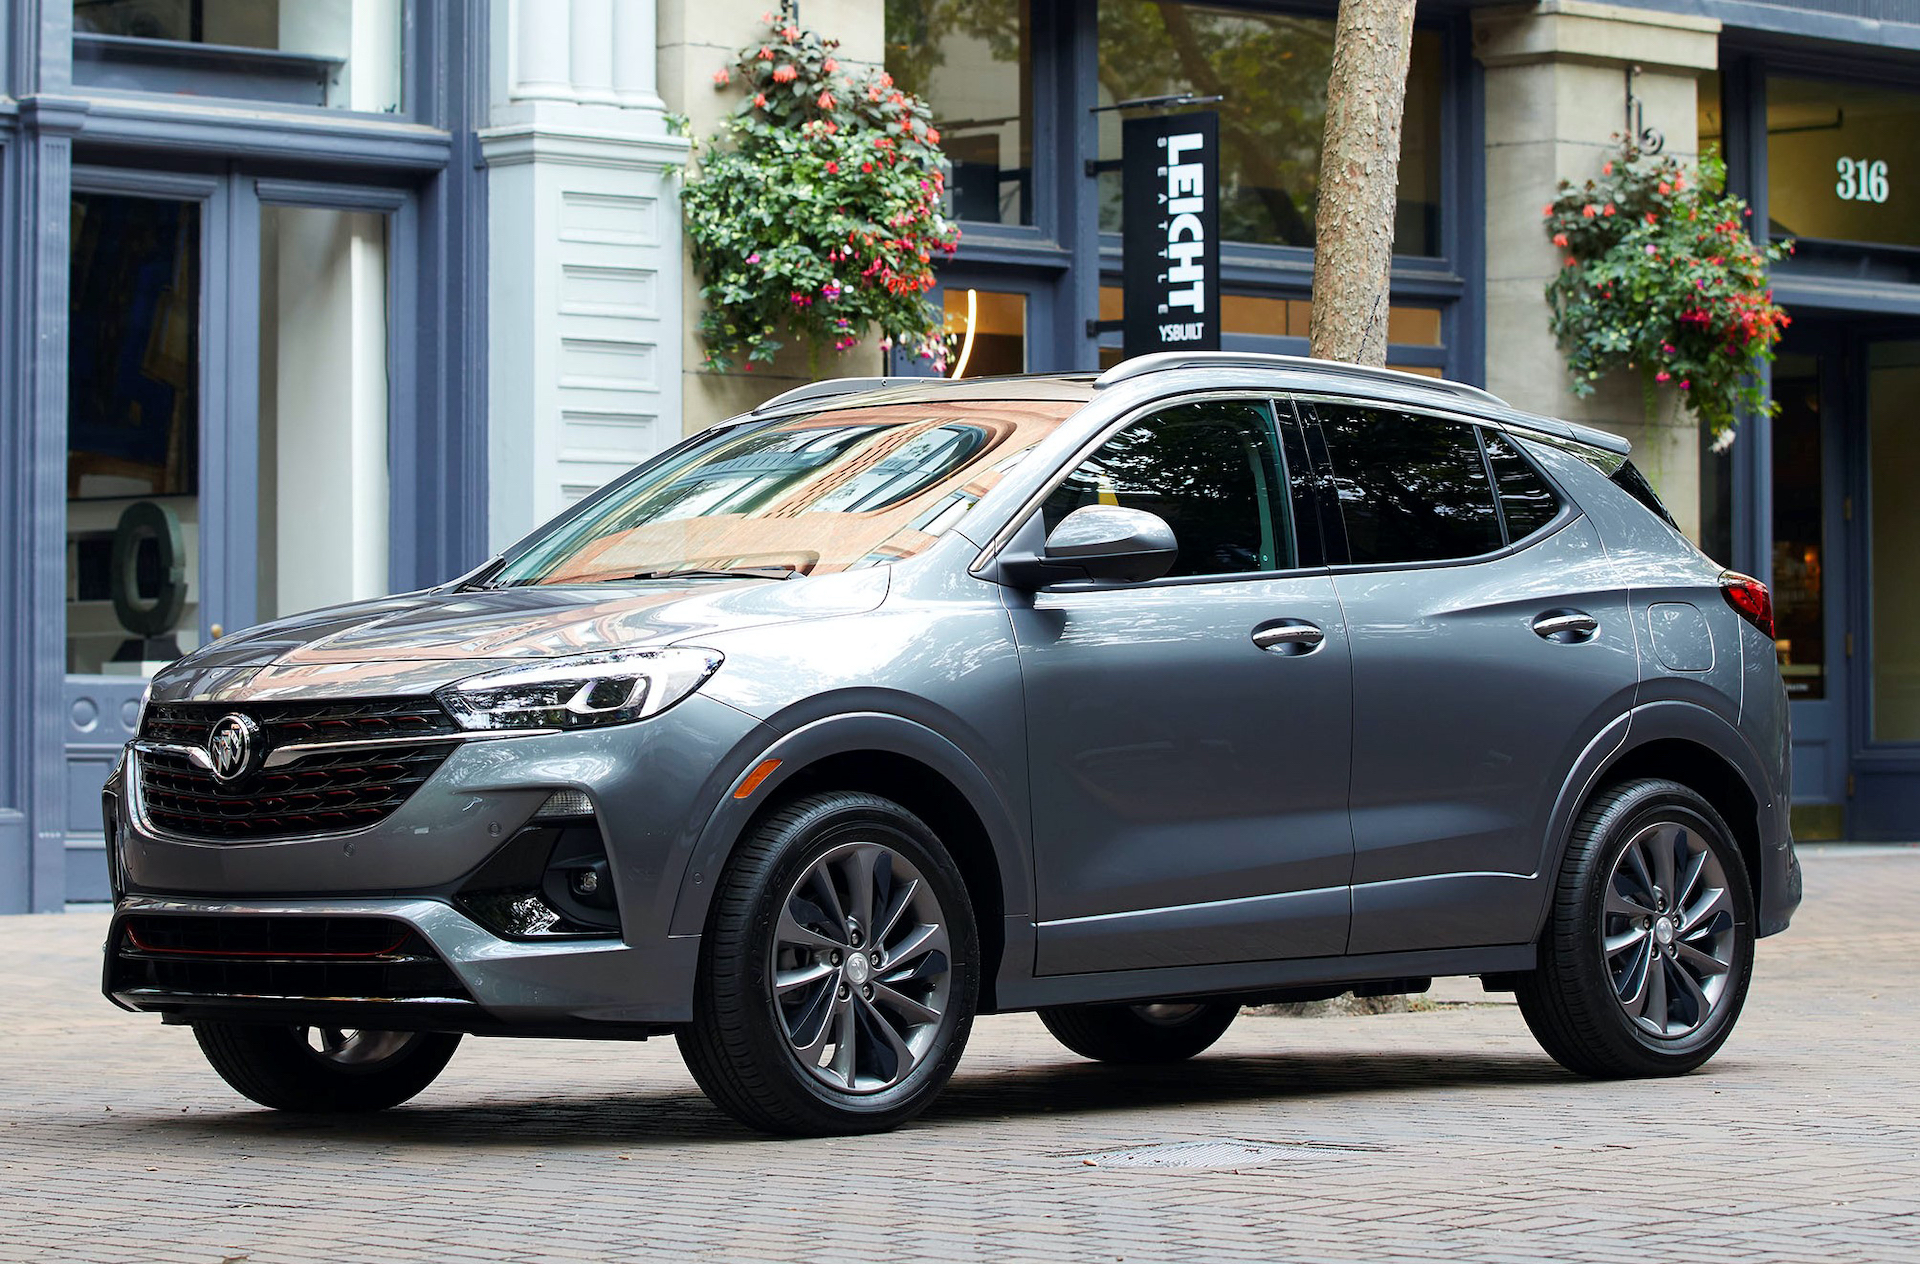 2021 Buick Encore Review, Ratings, Specs, Prices, And Photos 2021 Buick Encore Gx Build And Price, Build, Colors